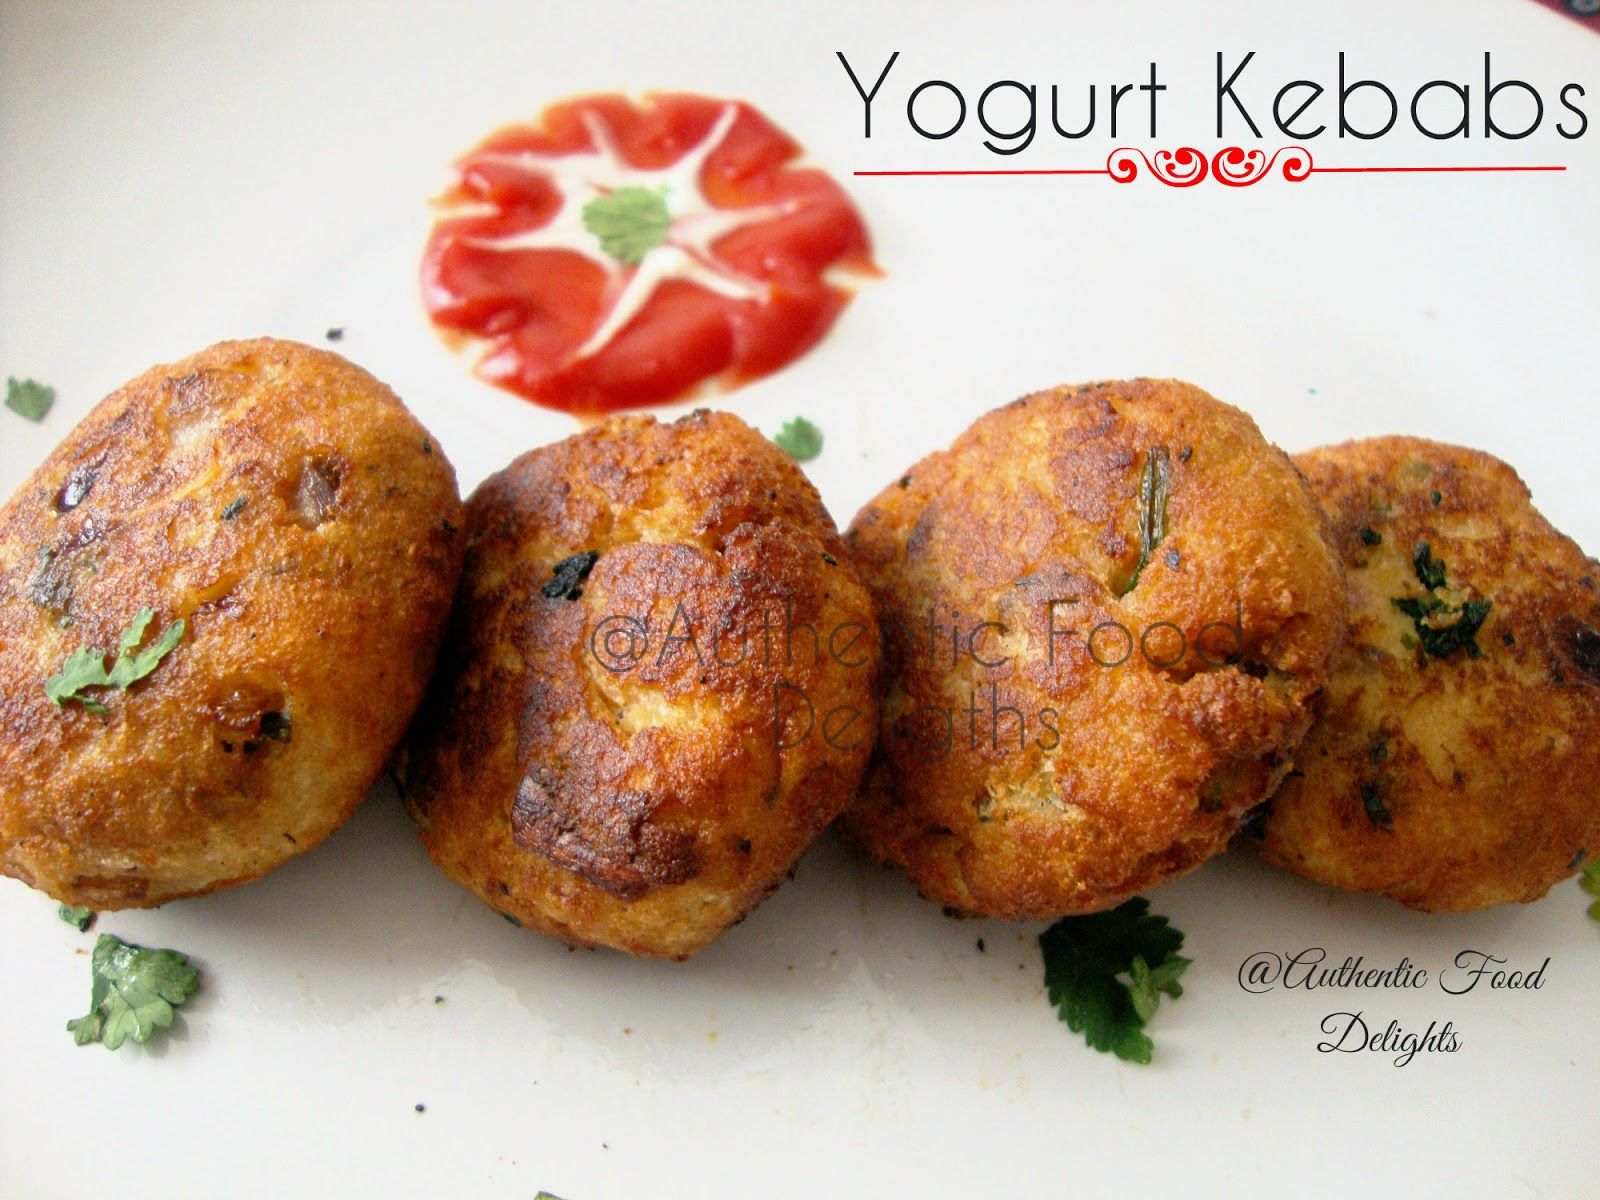 Authentic food delights recipe for yoghurt kebab indian authentic food delights recipe for yoghurt kebab forumfinder Images